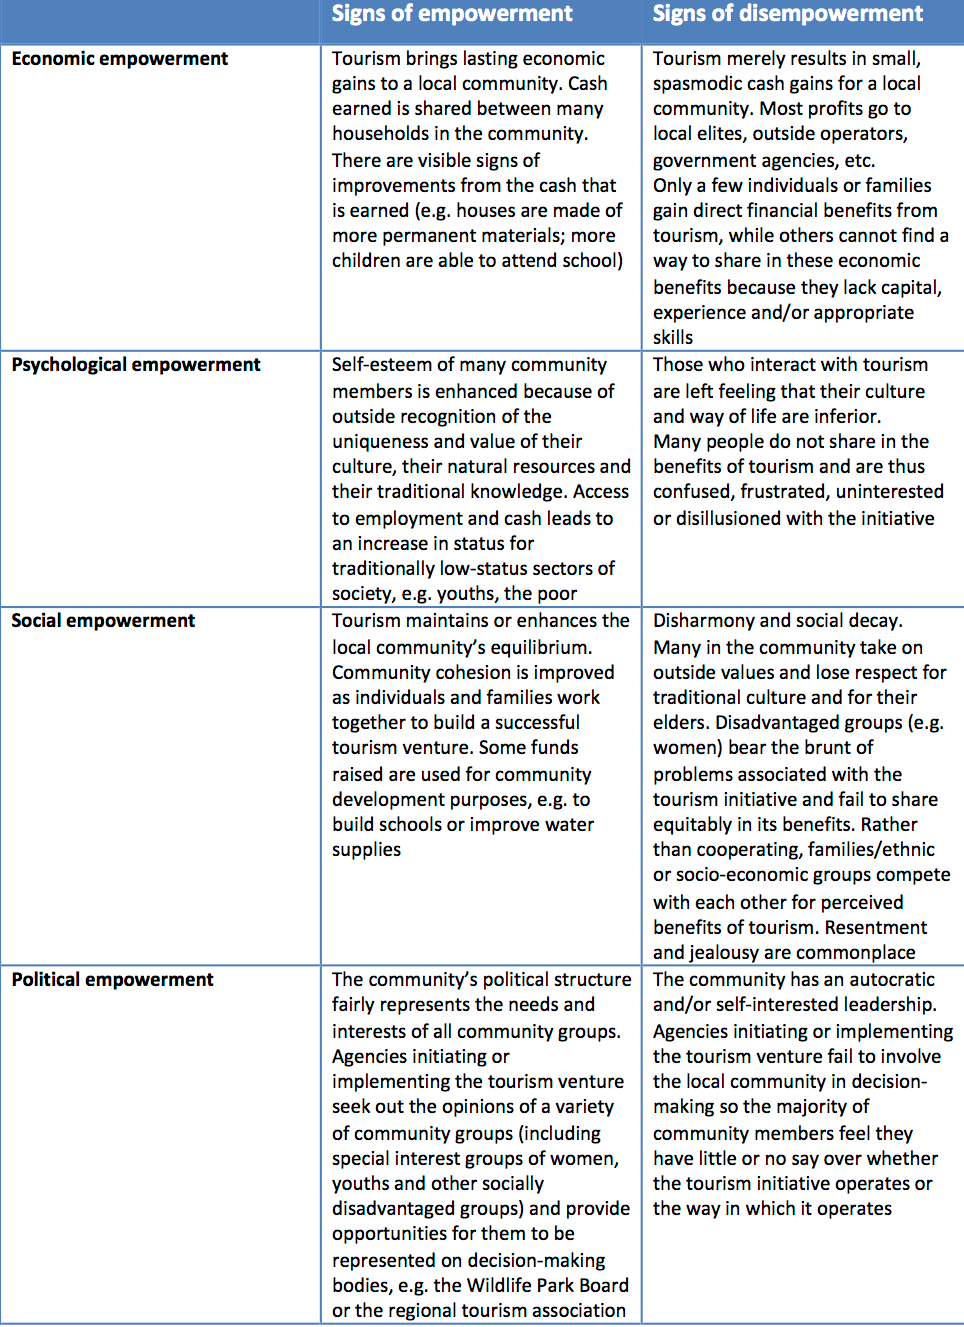 Framework for Assessing the Extent of Empowerment of Communities Involved in Tourism (Scheyvens, 2002, p.60)